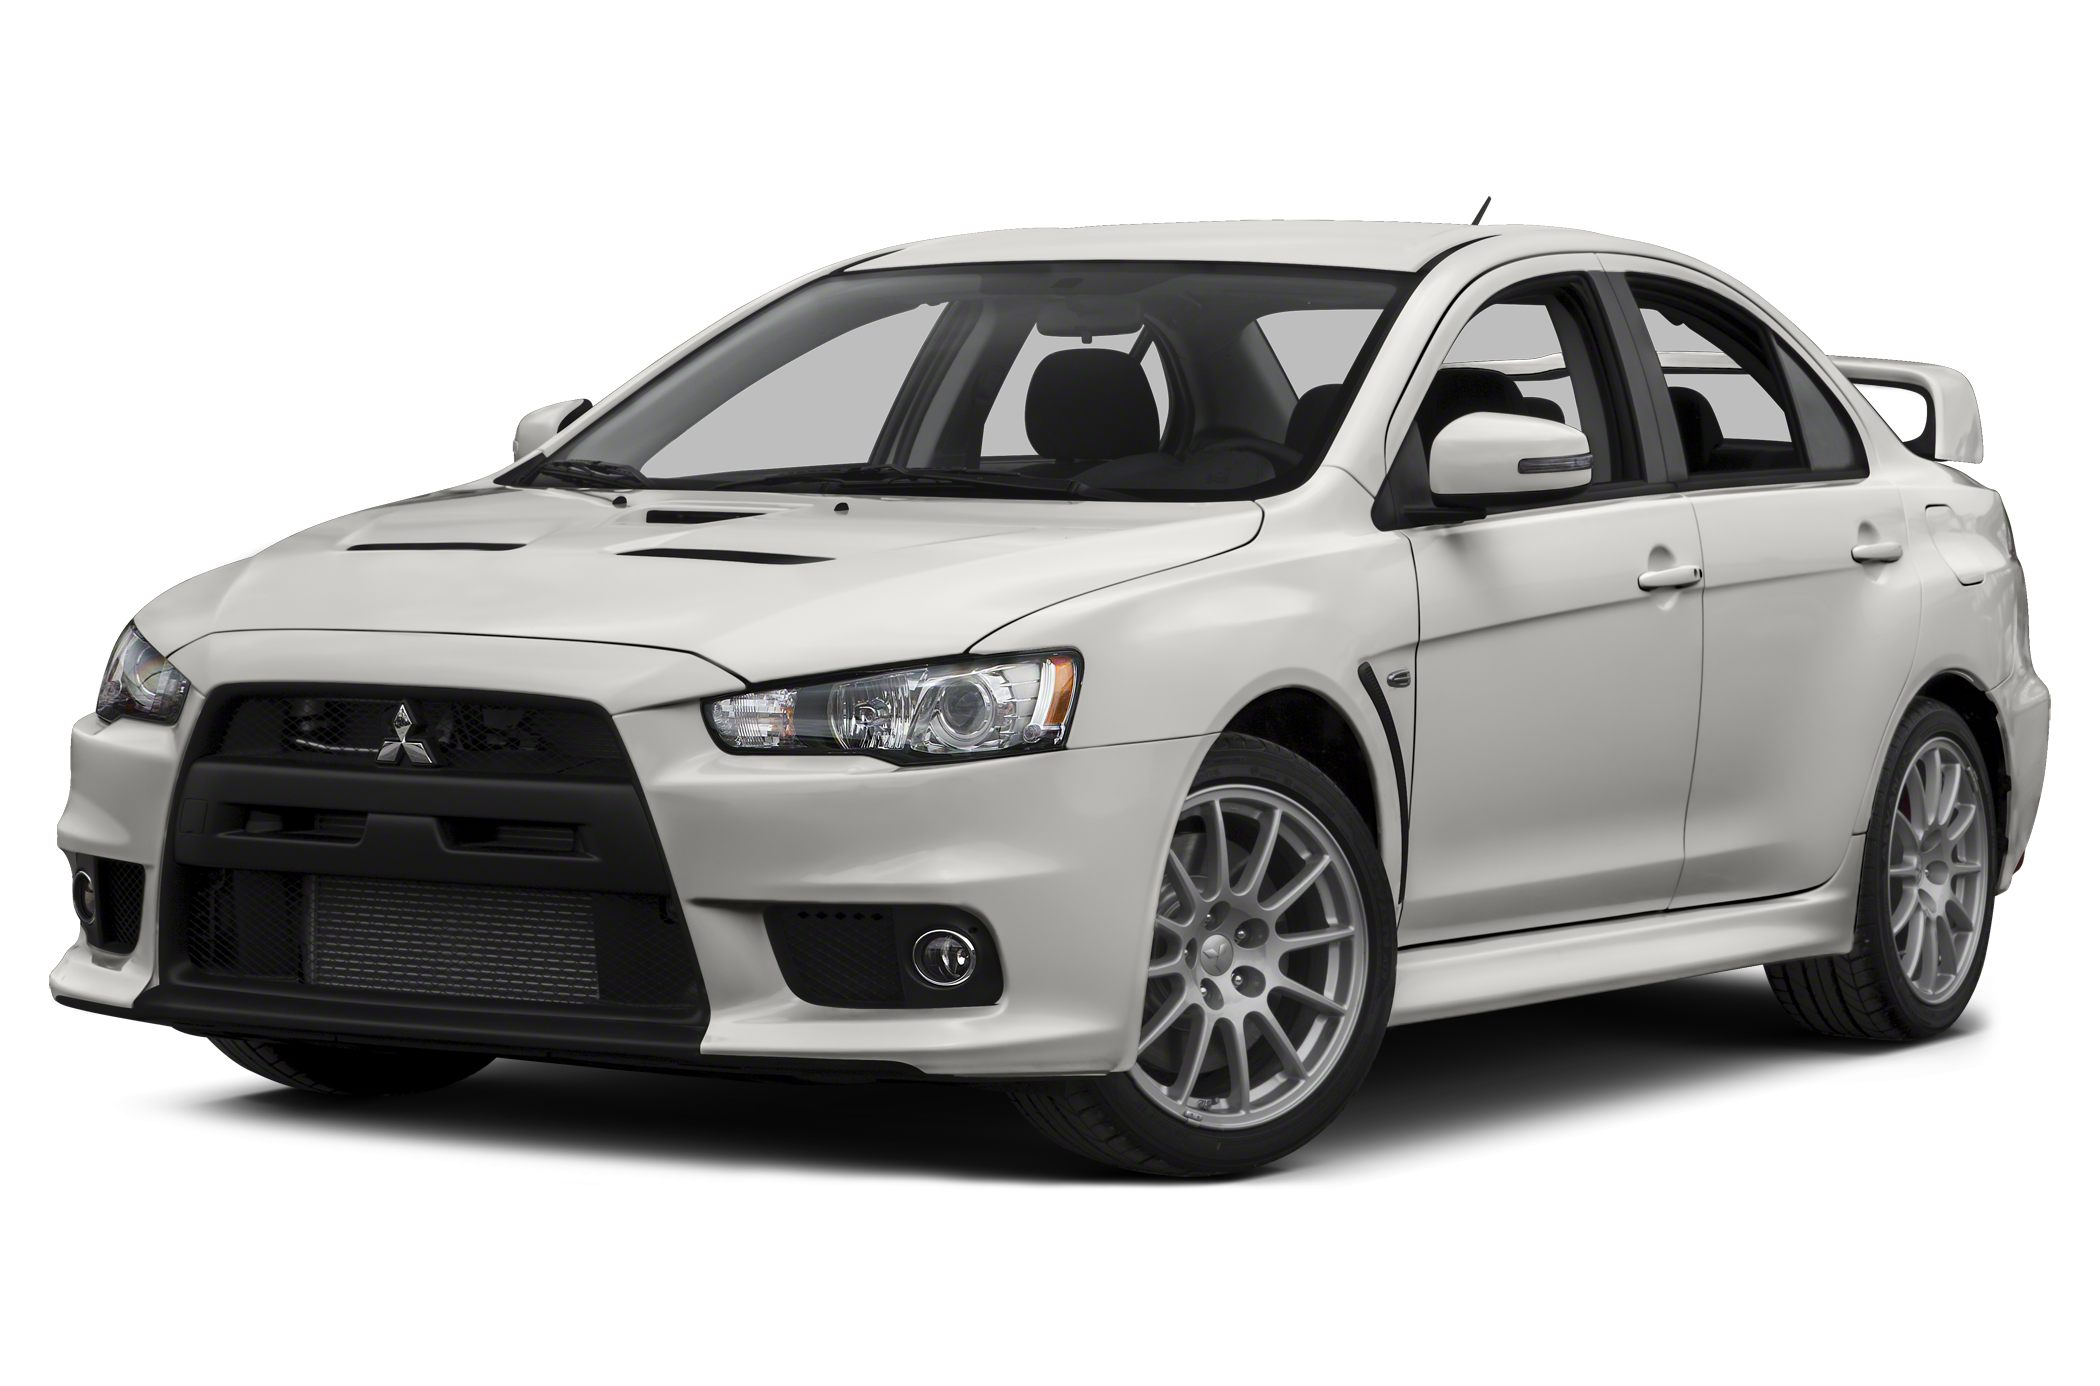 2015MitsubishiLancer Evolution